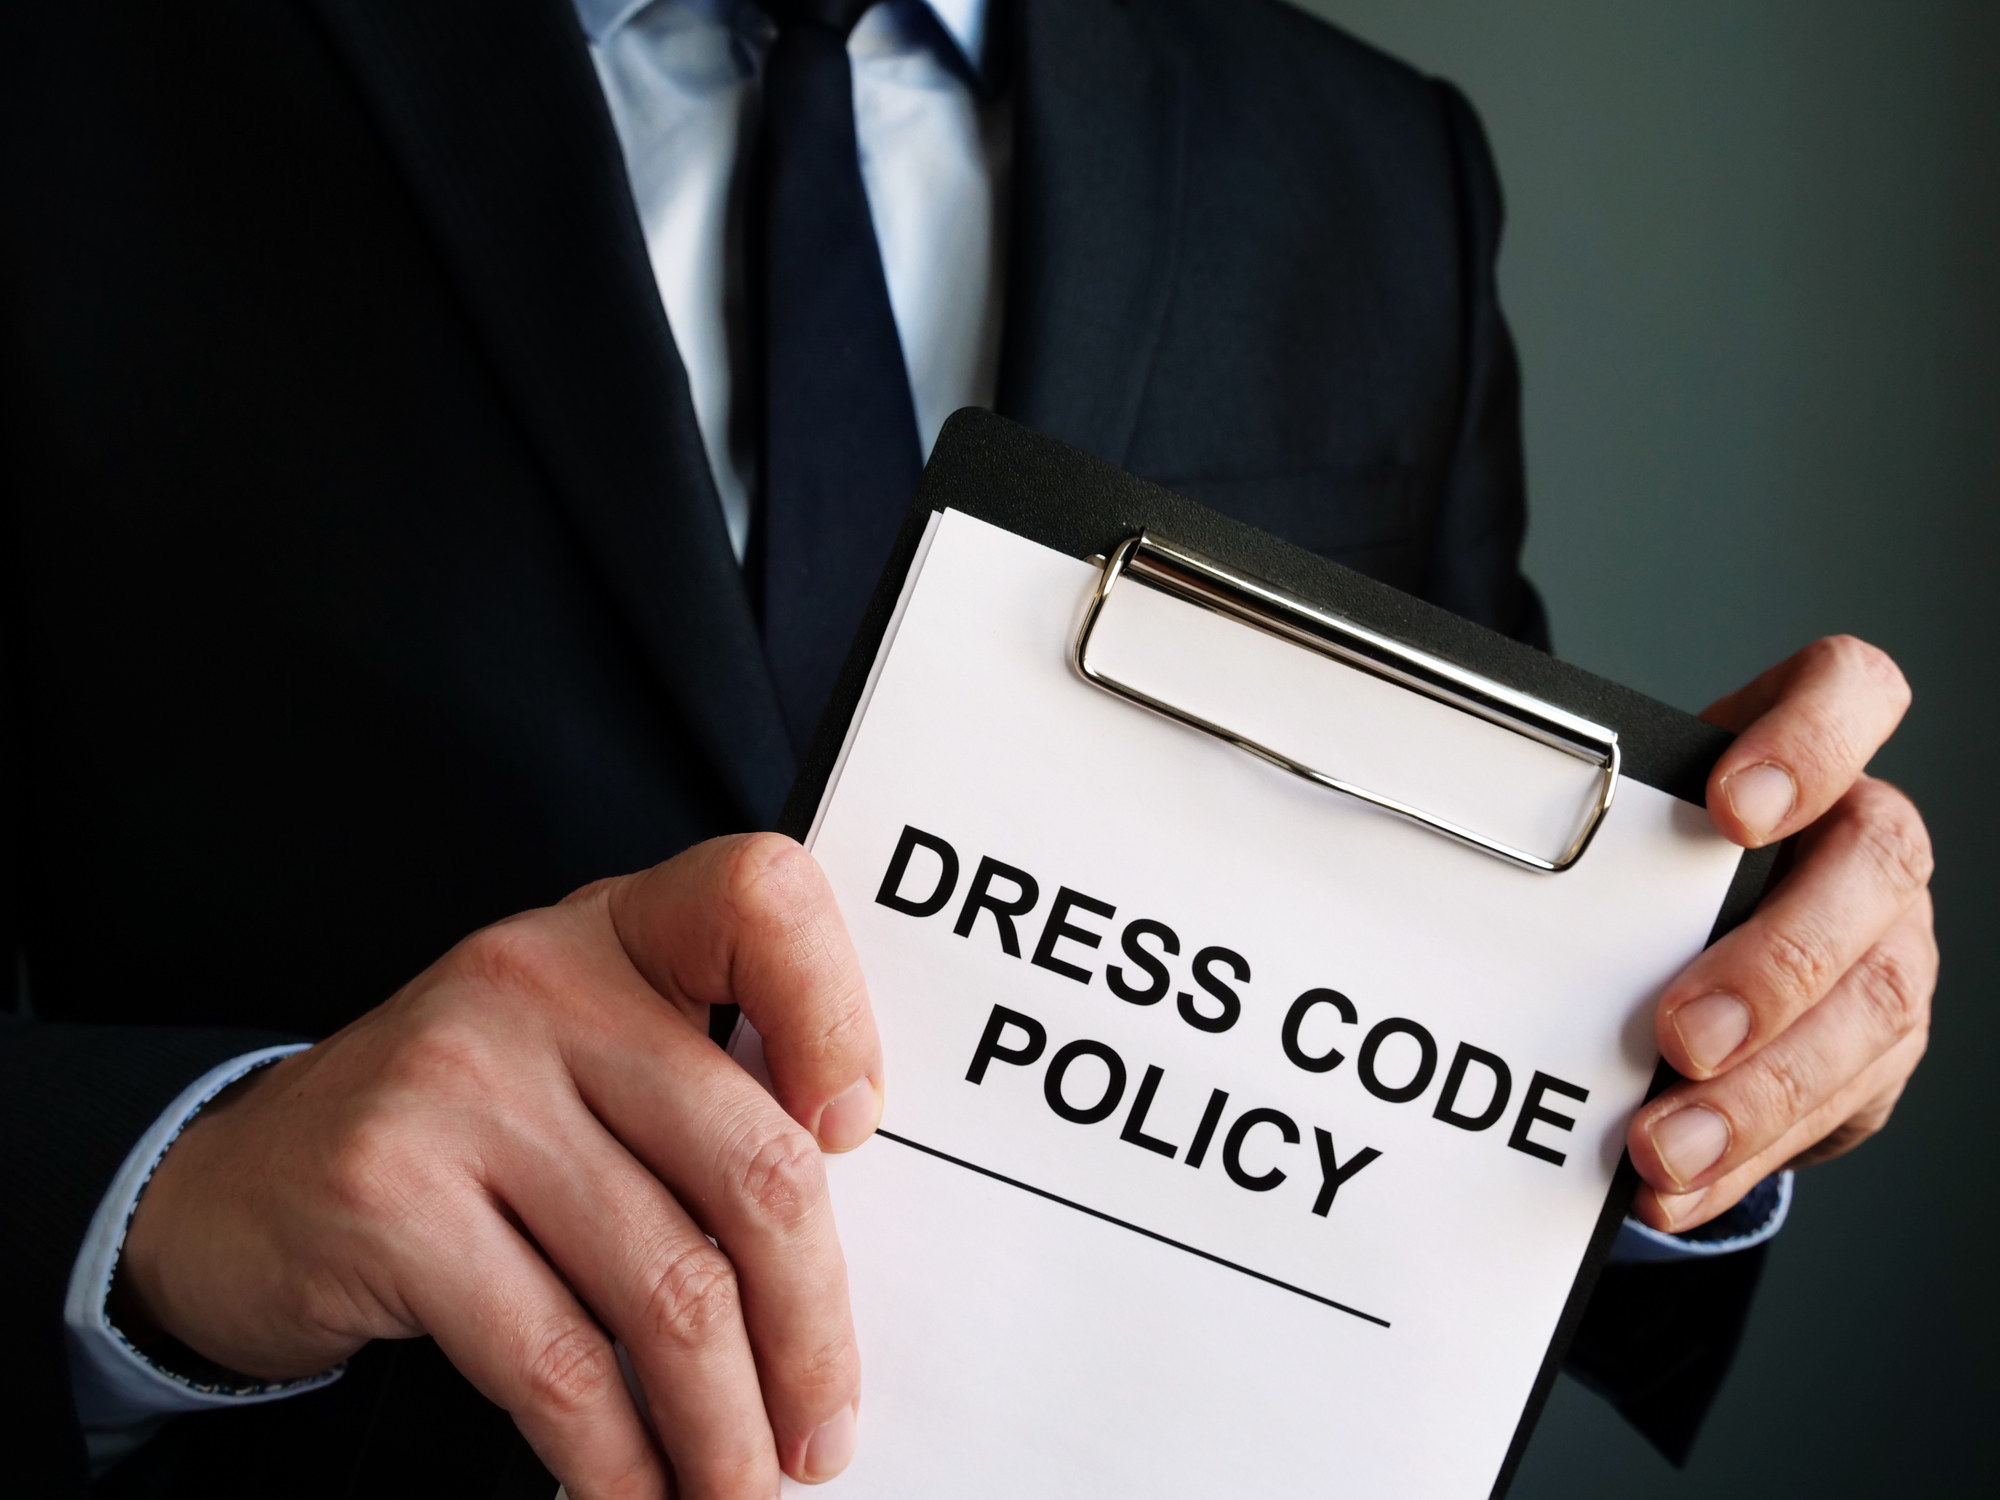 Manager holding Dress code policy